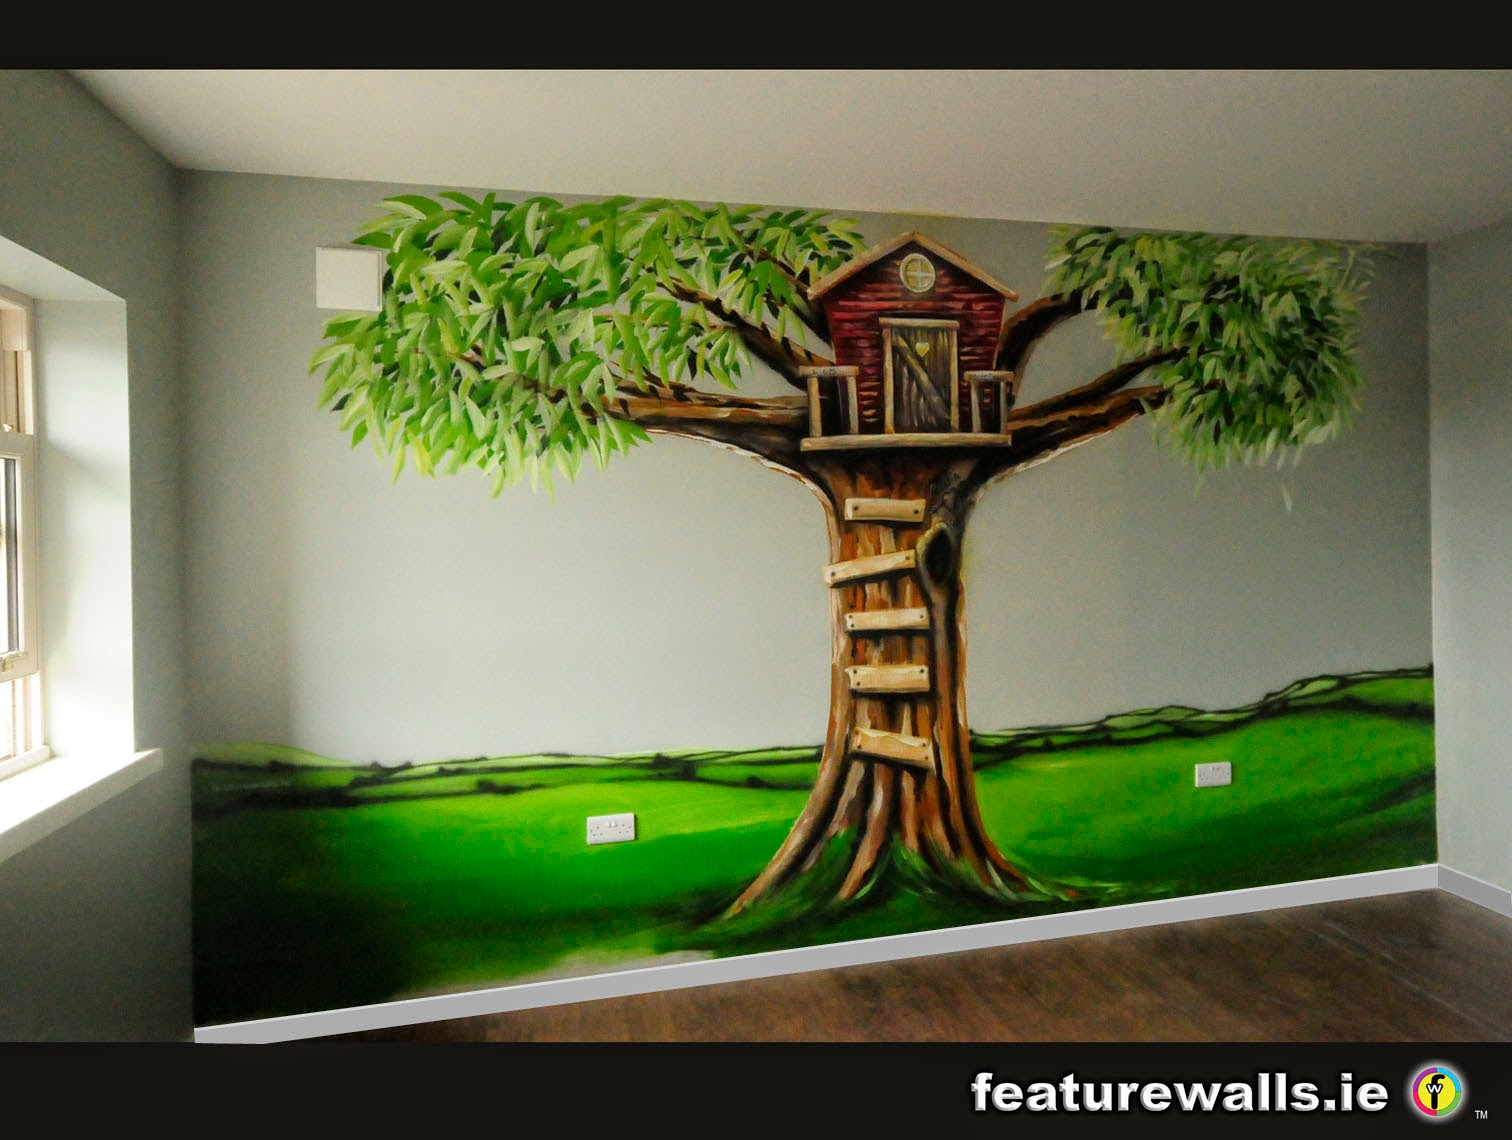 Mural Painting Professionals Featurewalls.ie: Hand Painted